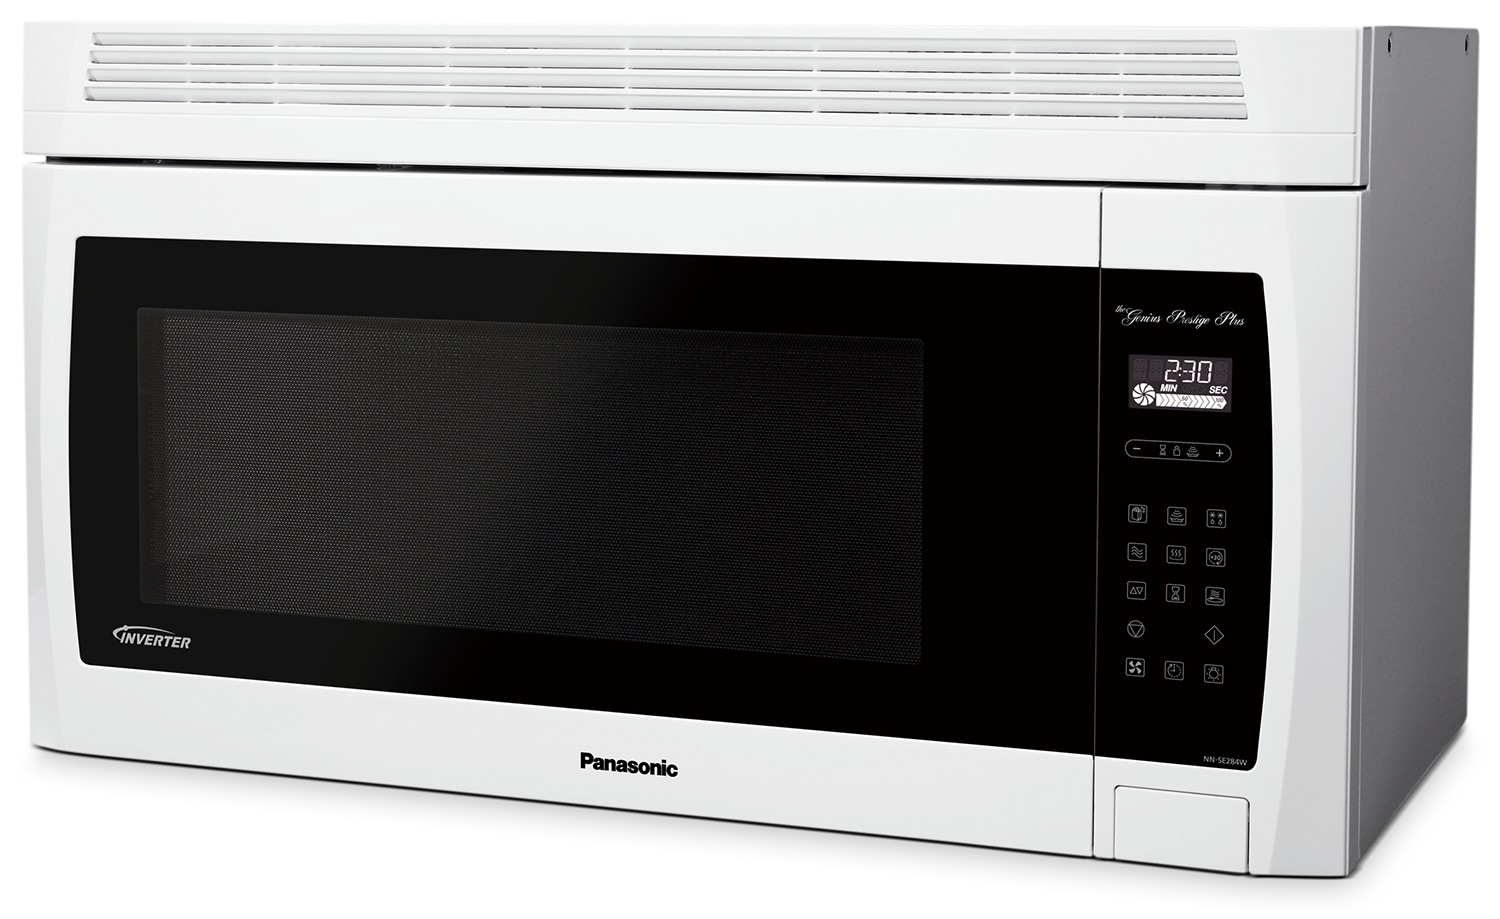 Cooking Products - Panasonic® 2.0 Cu. Ft. Genius® Prestige® Plus Over-the-Range Microwave Oven - White